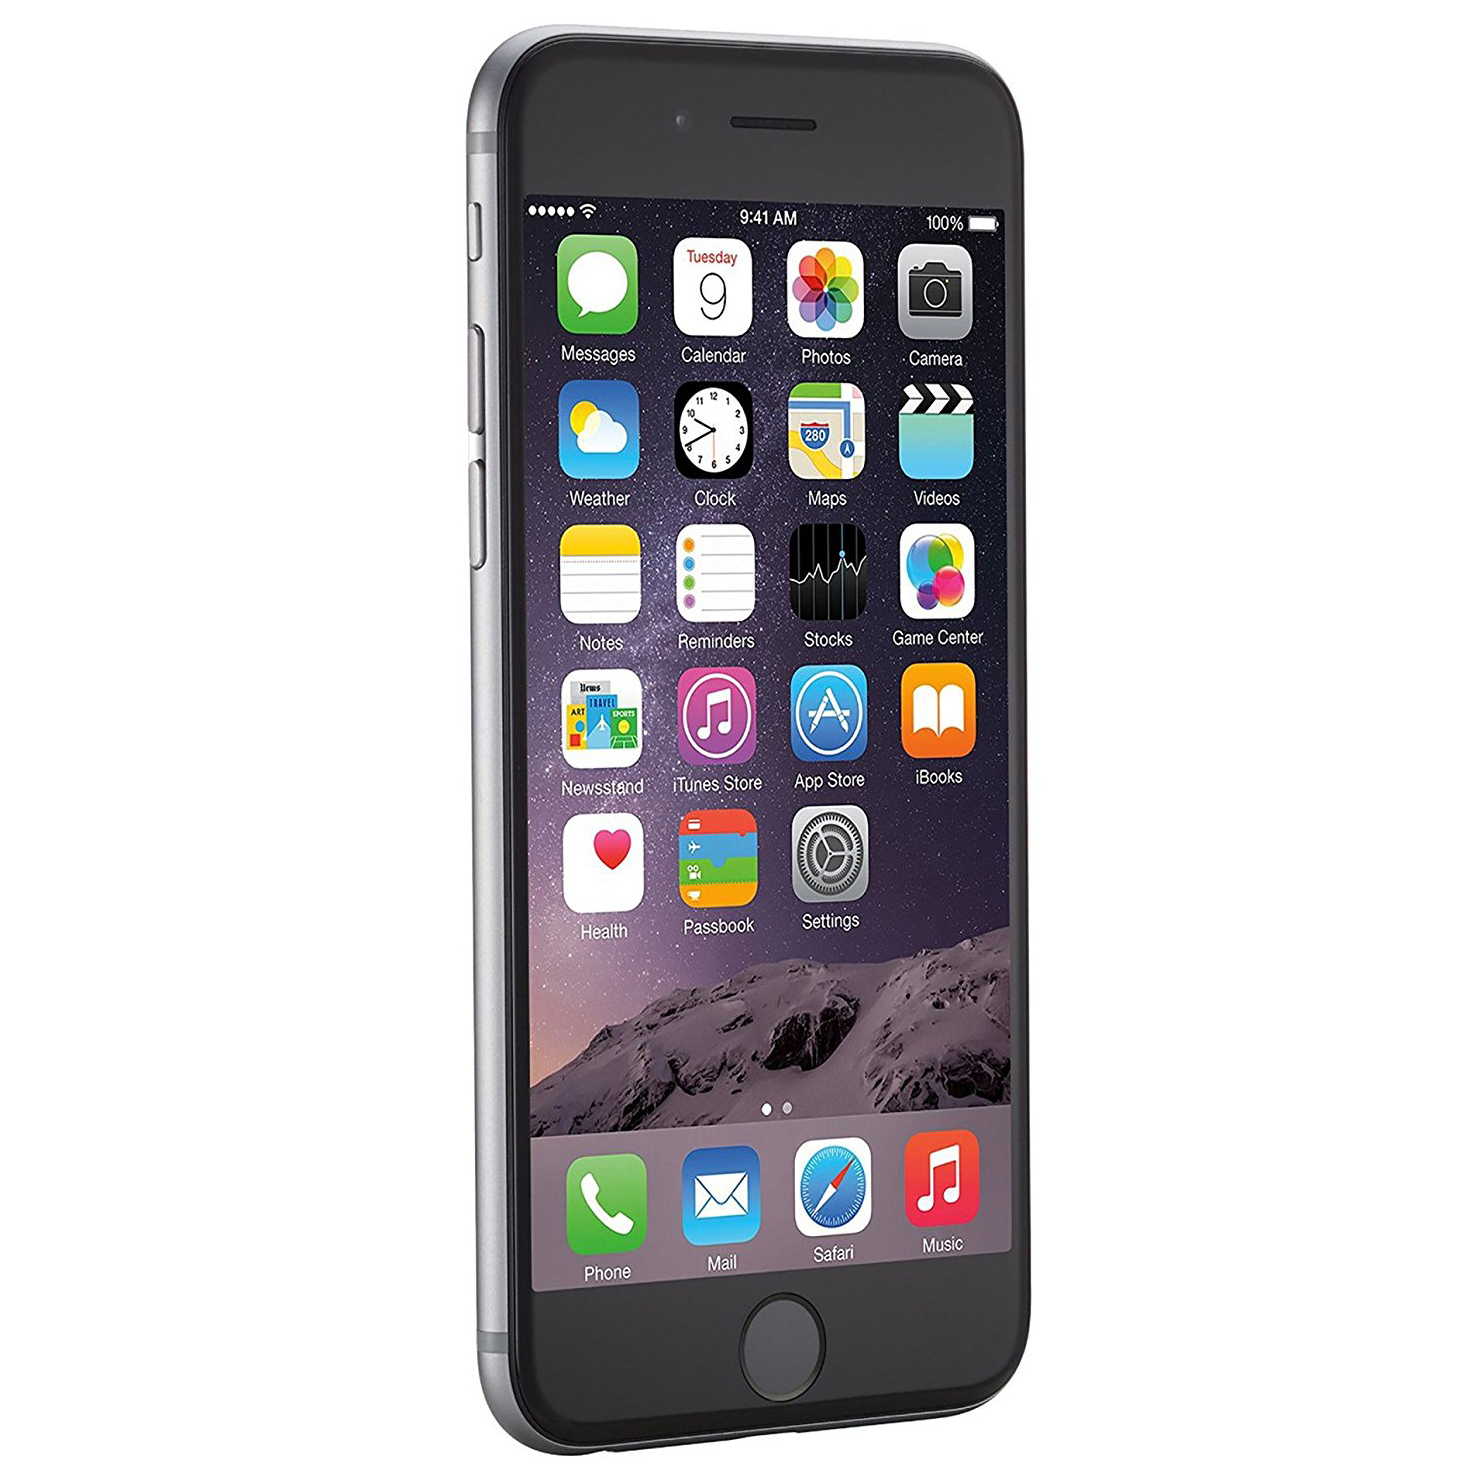 iphone 6 lte apple iphone 6 16gb gsm unlocked 4g lte smartphone w free 11357